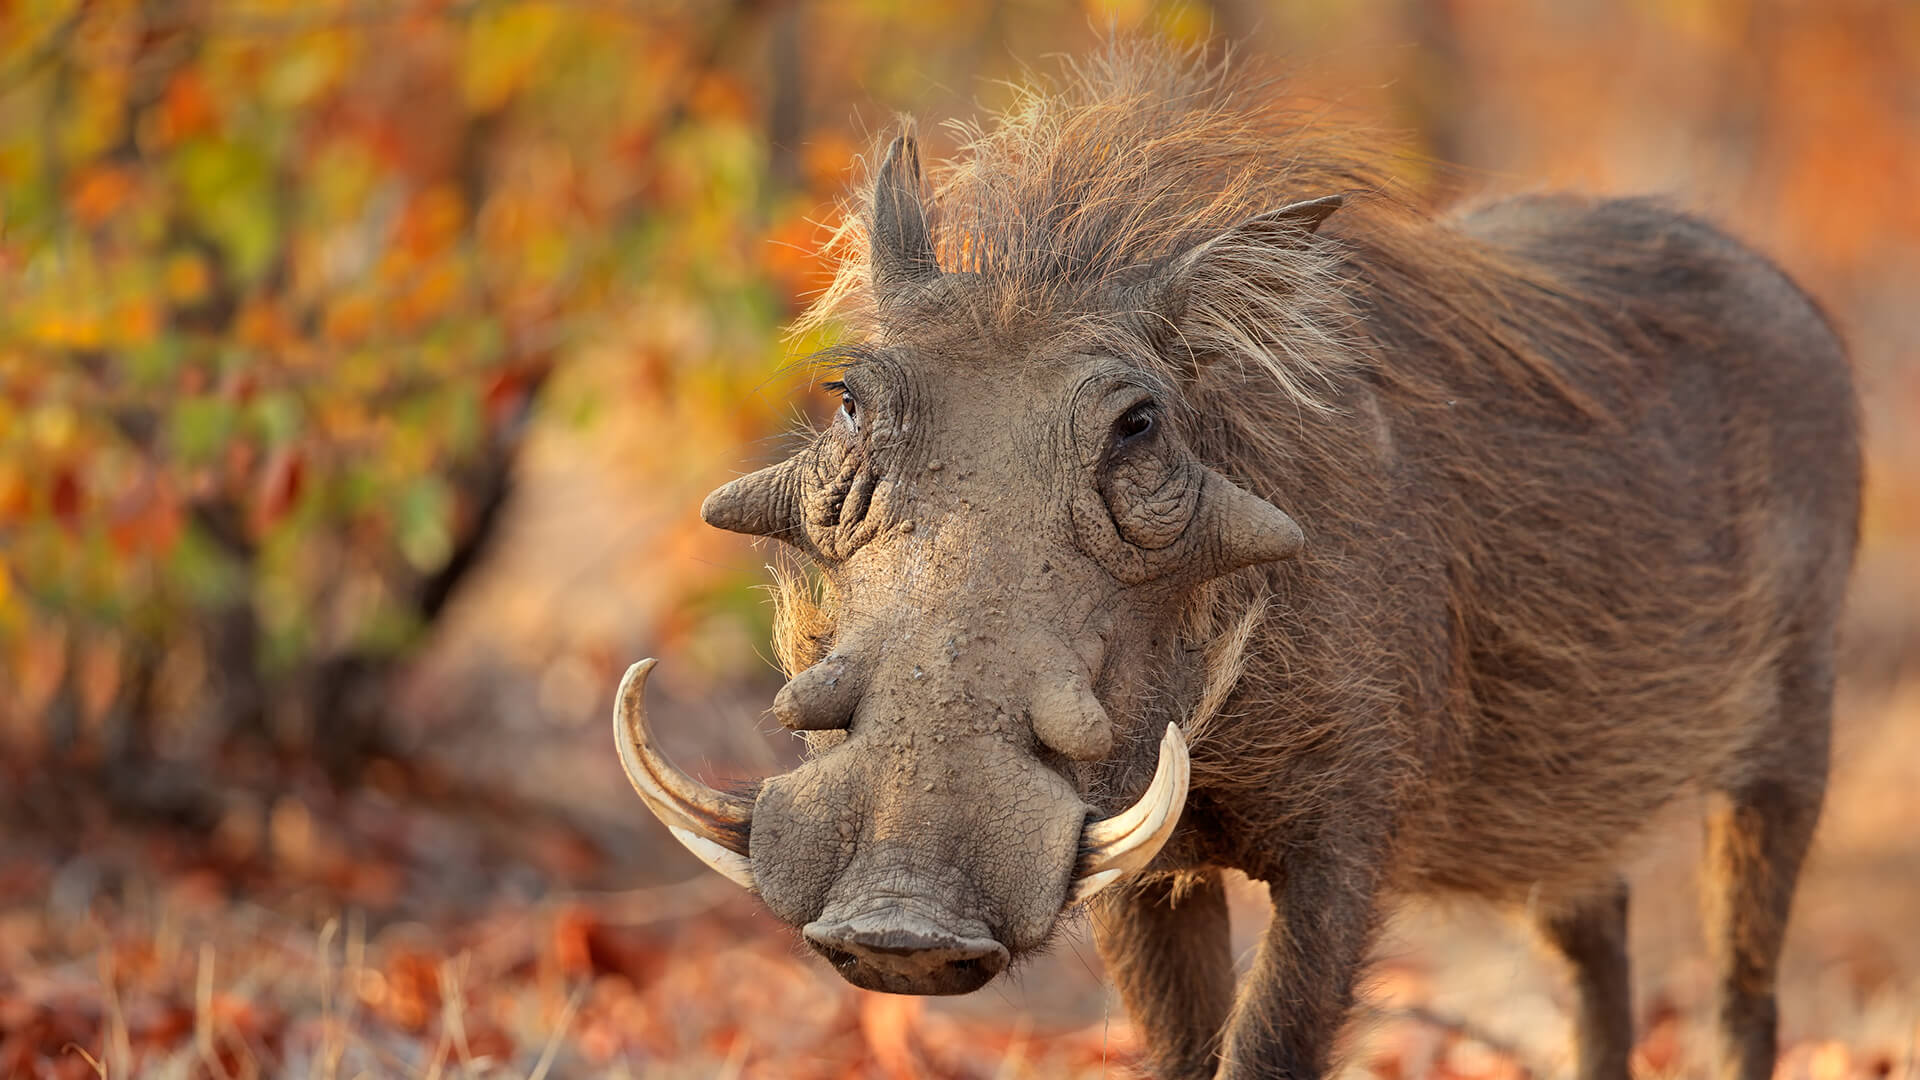 Warthog Facts, History, Useful Information and Amazing Pictures